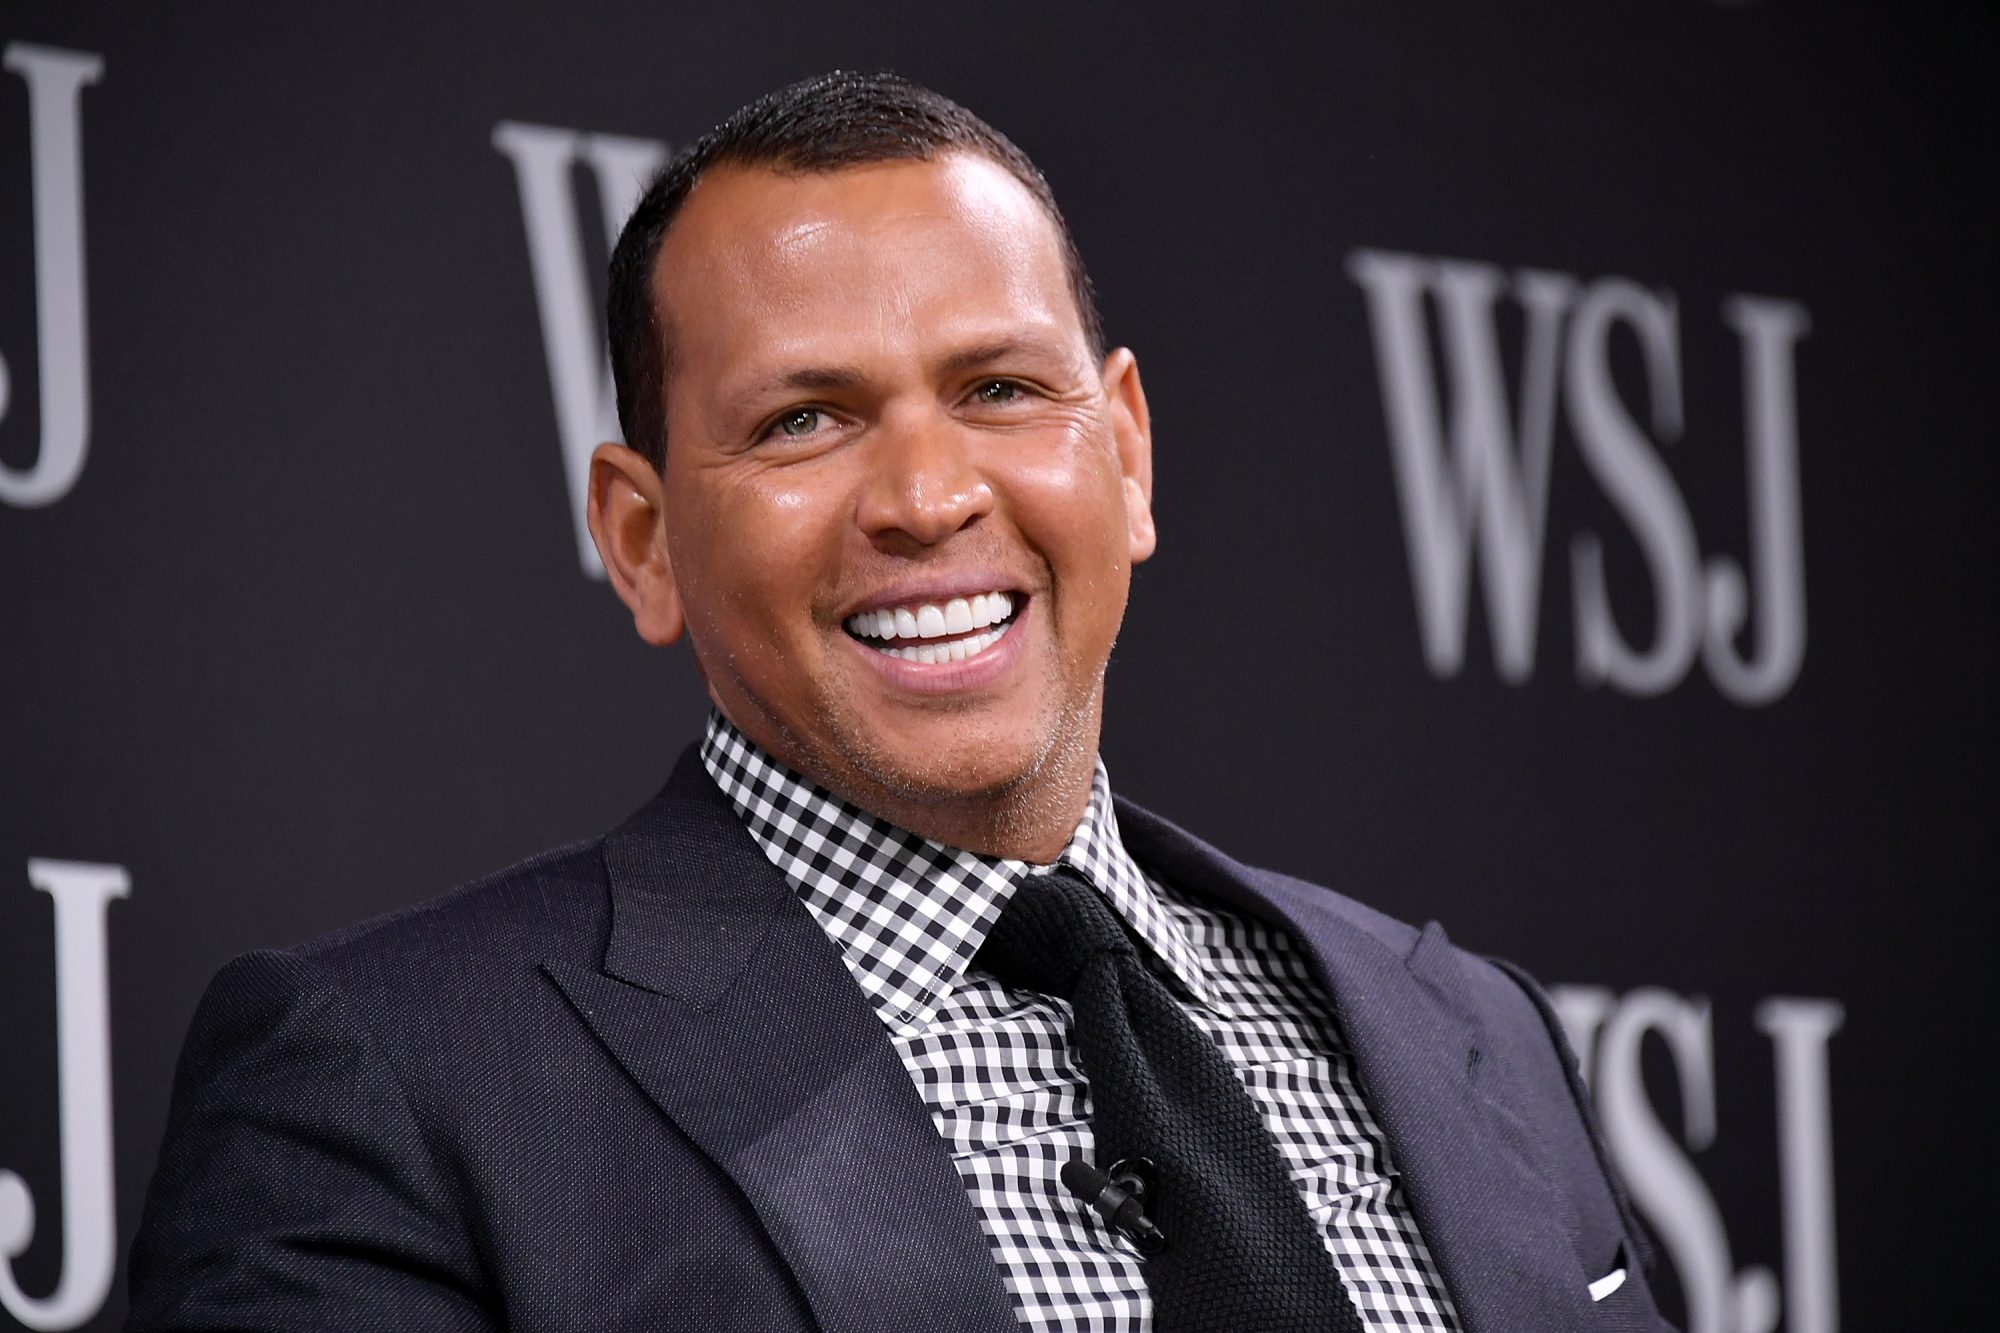 Here's the Exact Style Tip Alex Rodriguez Daughter Gave Him Before He Hit the Runway